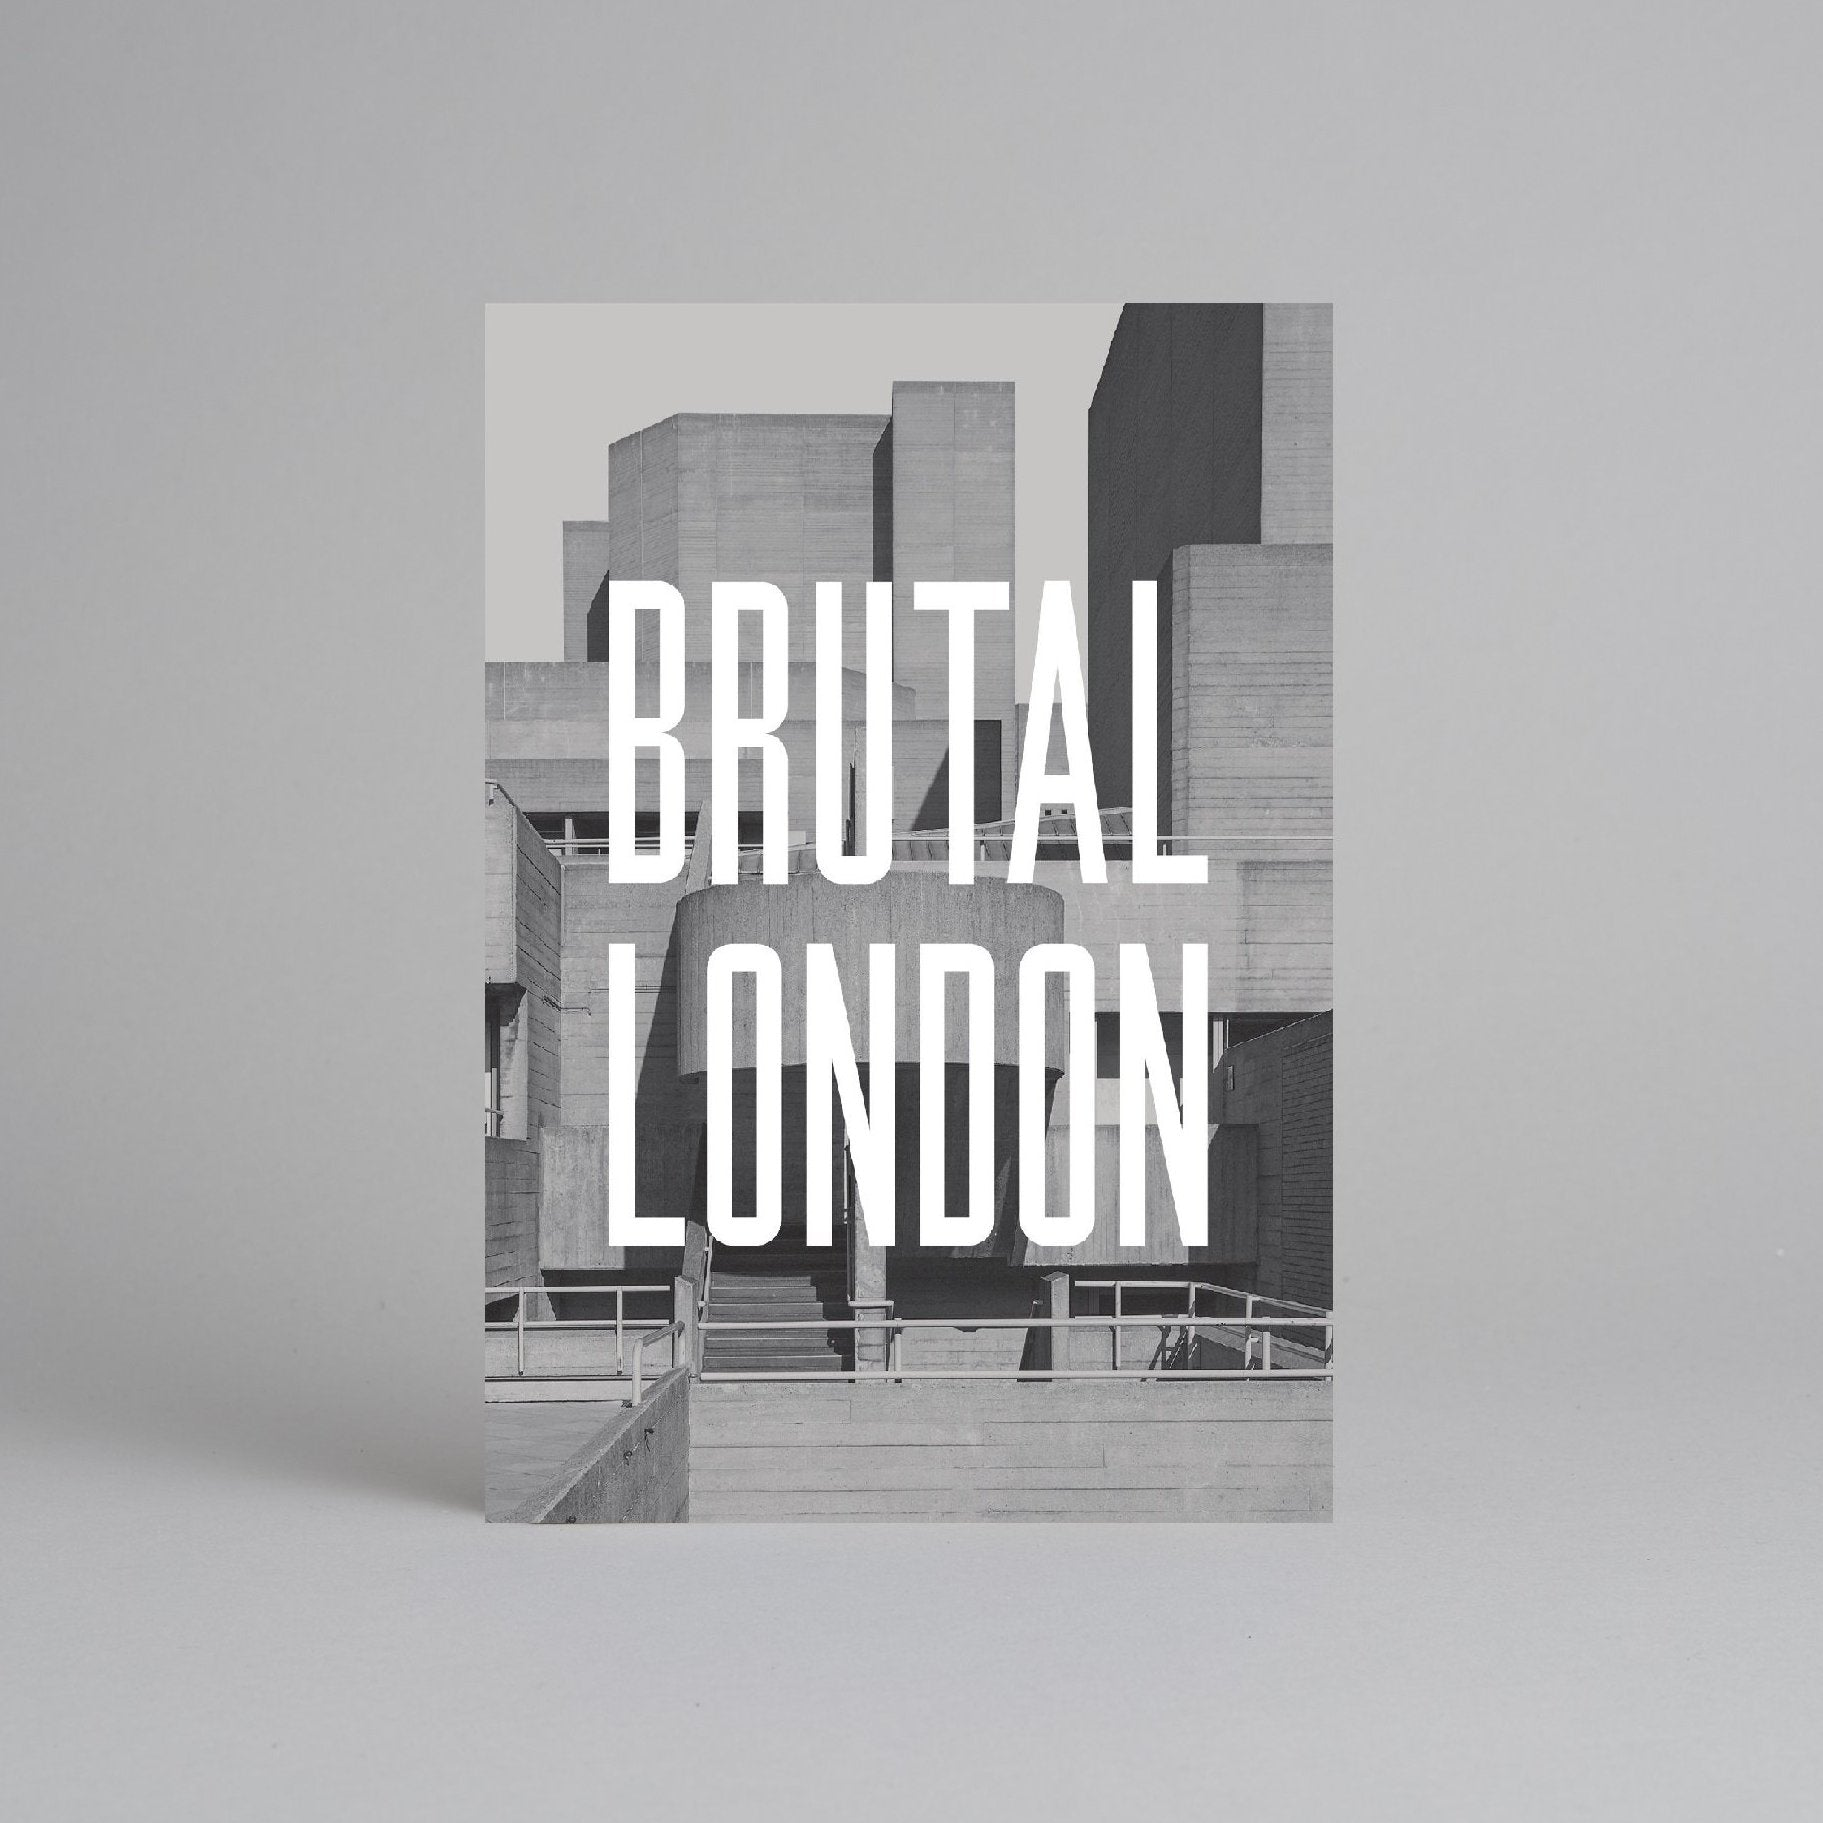 Brutal London by Simon Phipps